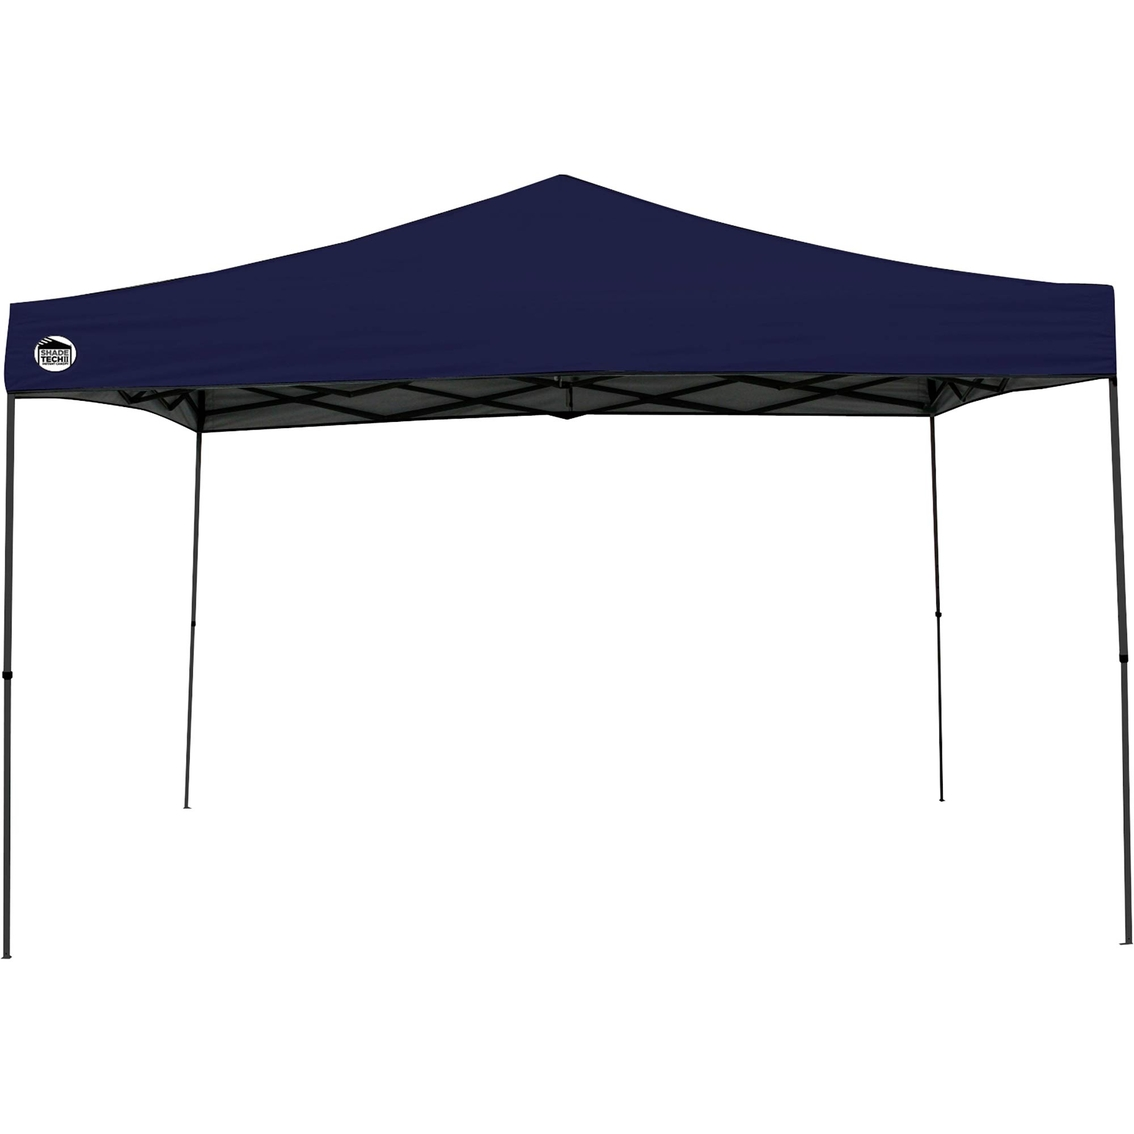 Shade Tech ST144 12 Ft. x 12 Ft. Canopy  sc 1 st  ShopMyExchange.com & Shade Tech St144 12 Ft. X 12 Ft. Canopy | Canopies | Sports ...